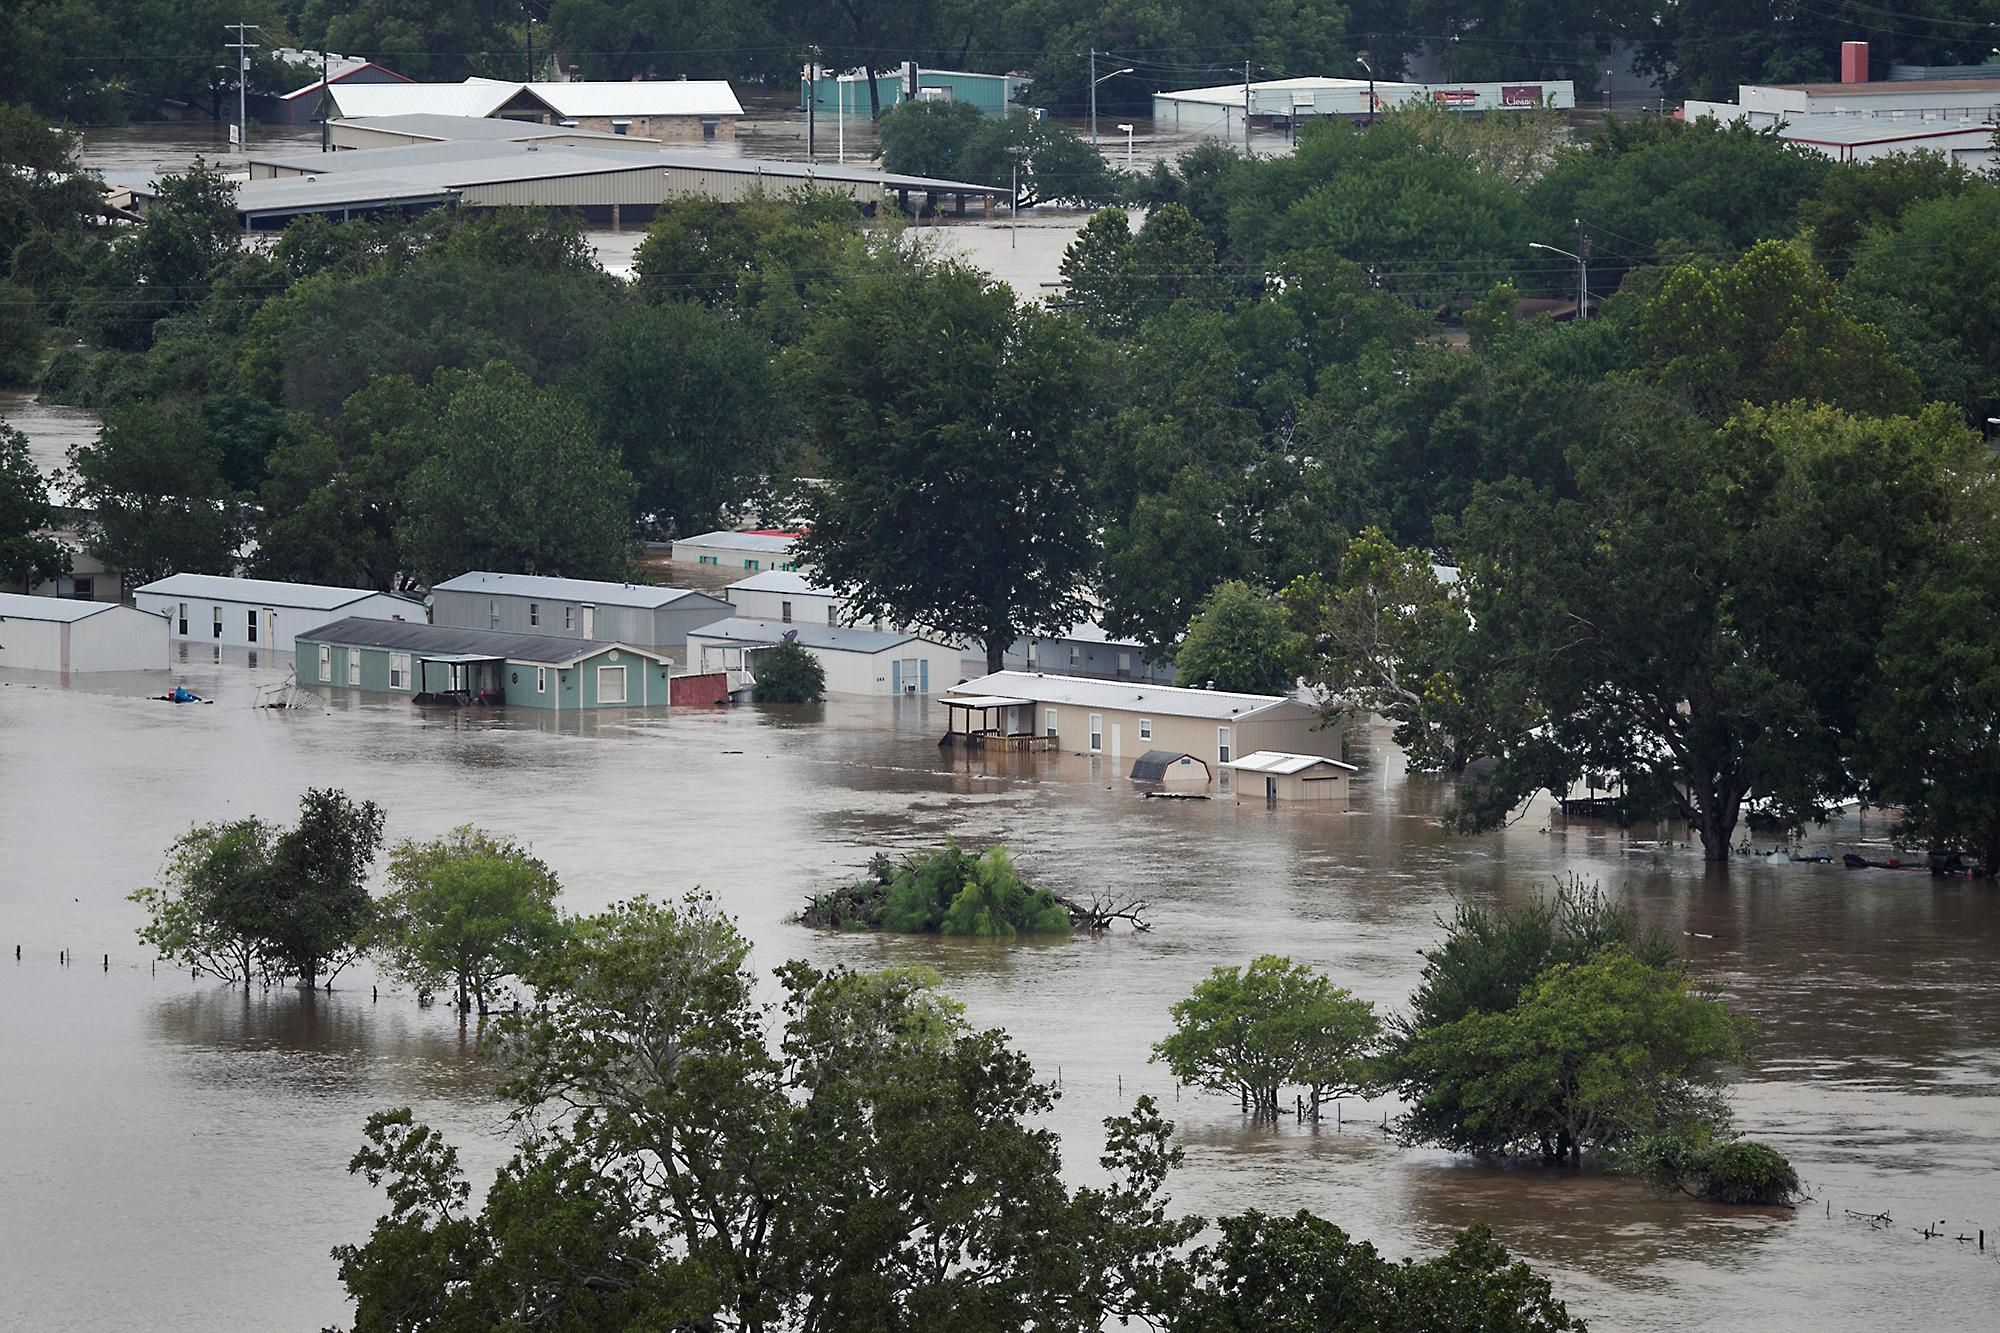 Widespread flooding due to Tropical Storm Harvey is viewed Monday, Aug. 28, 2017, in La Grange, Texas. (Ralph Barrera/Austin American-Statesman via AP)